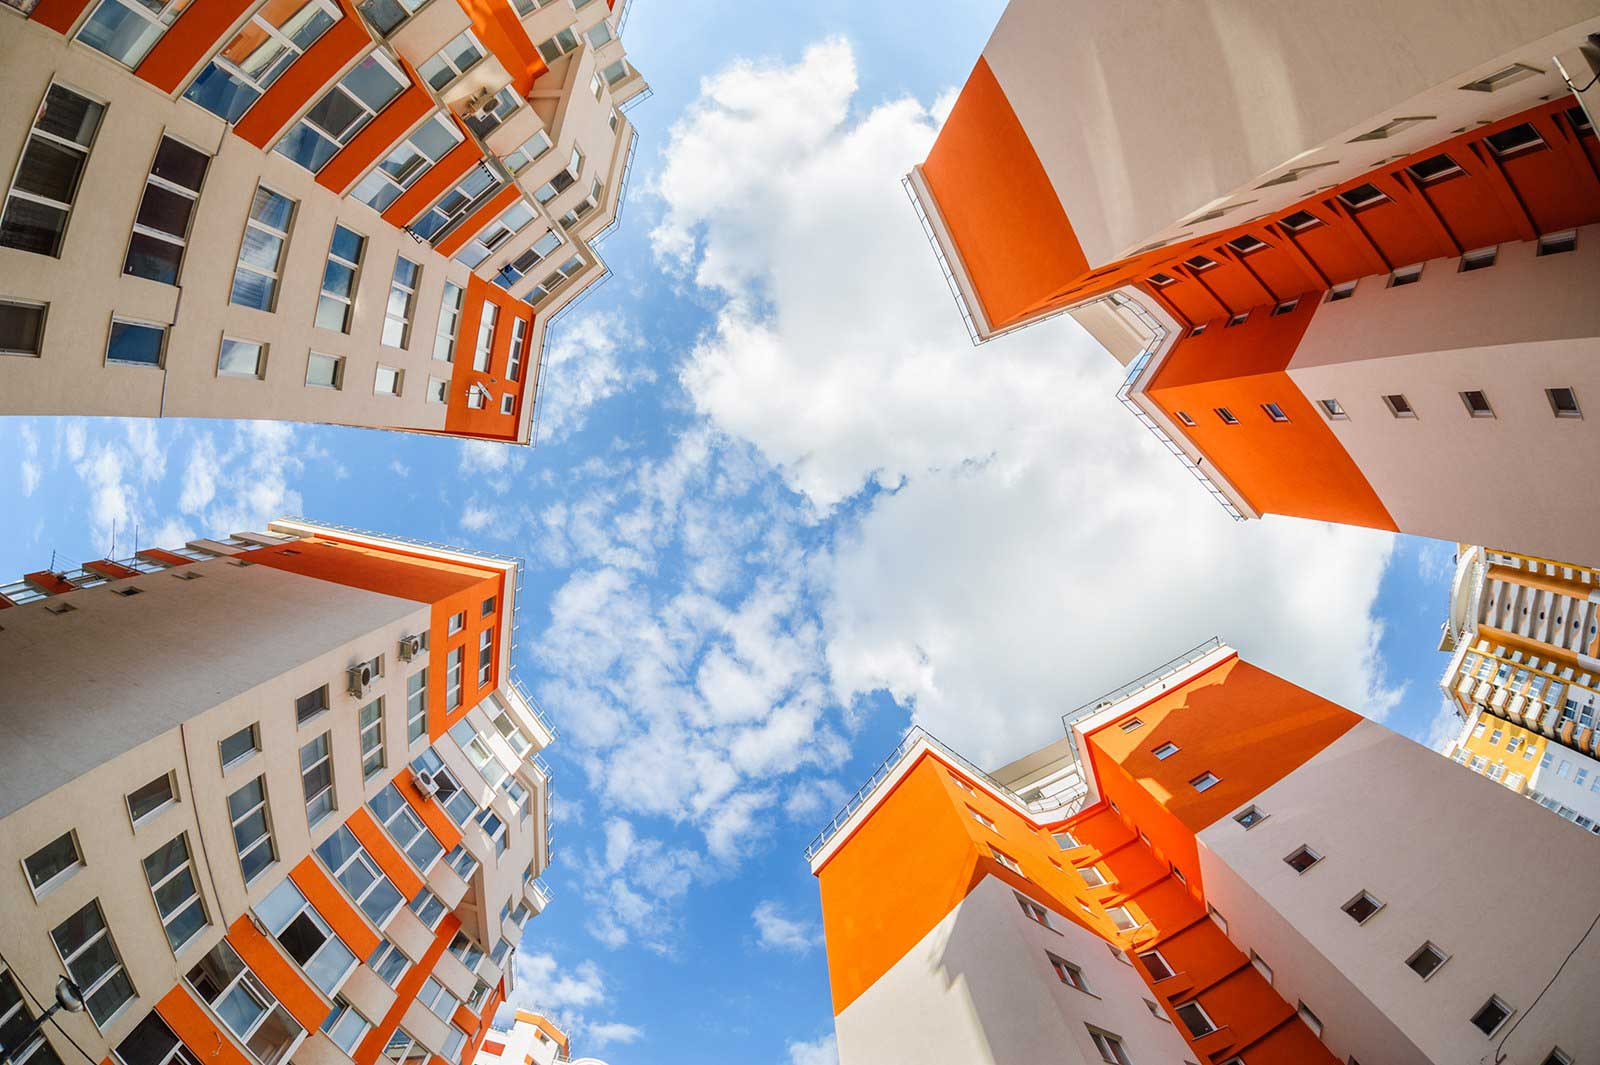 photo of orange and white commercial building